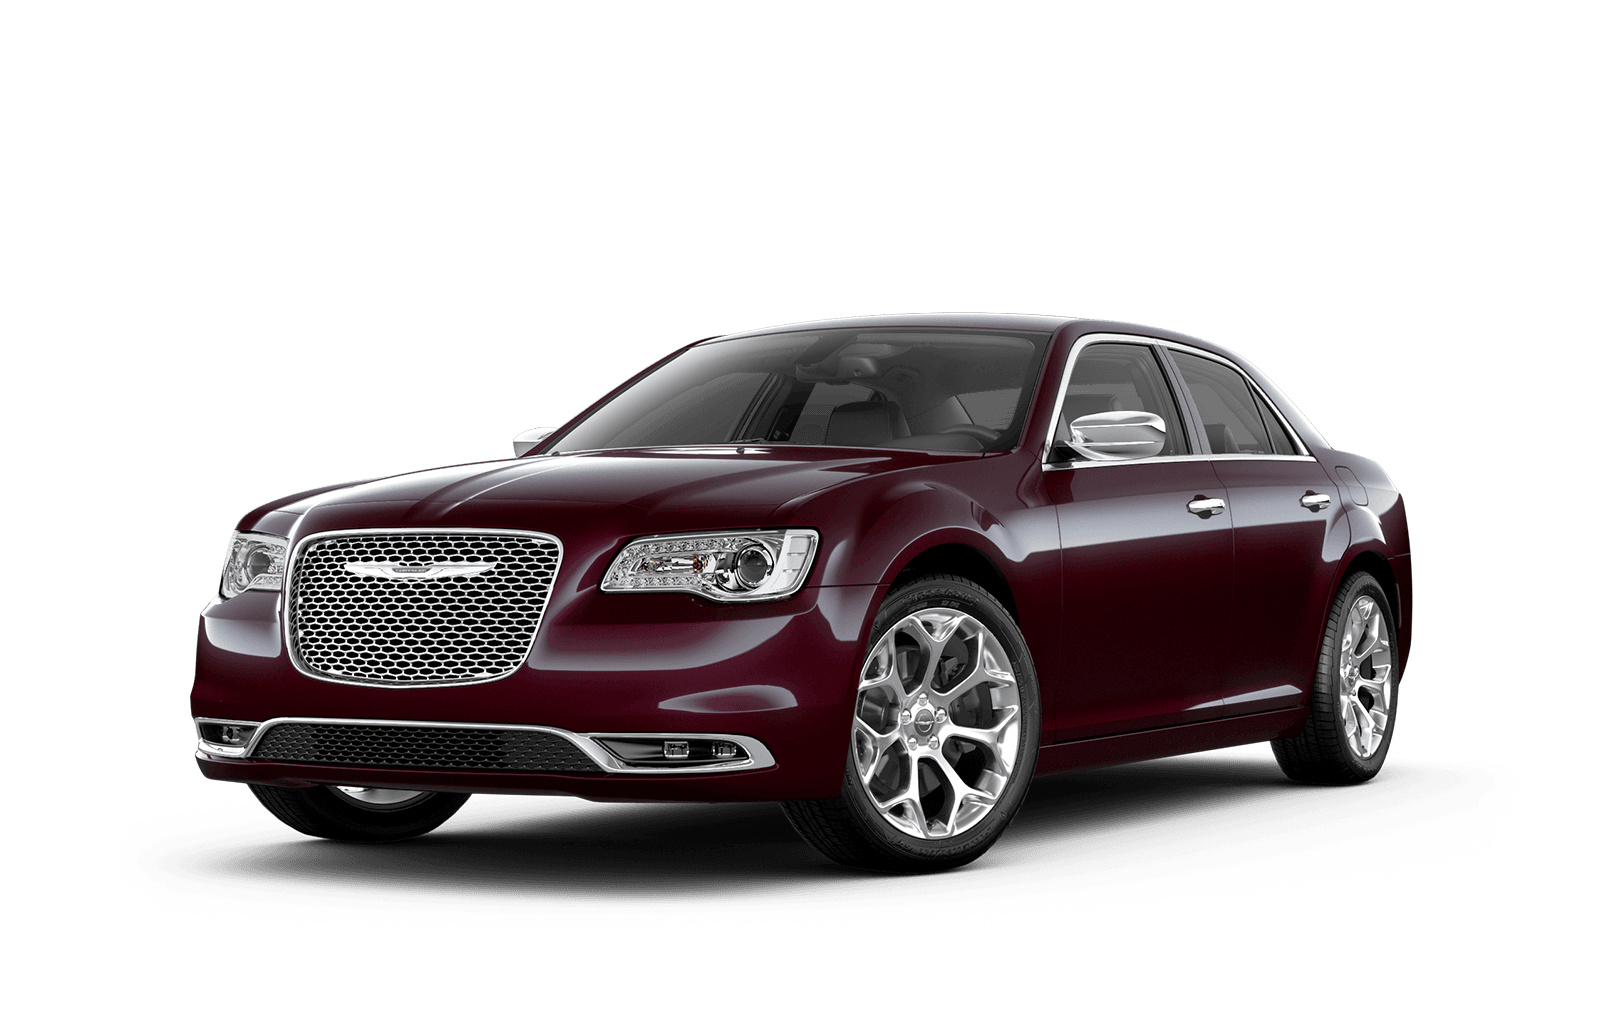 2019 Chrysler 300 Full View in Red with Wheels